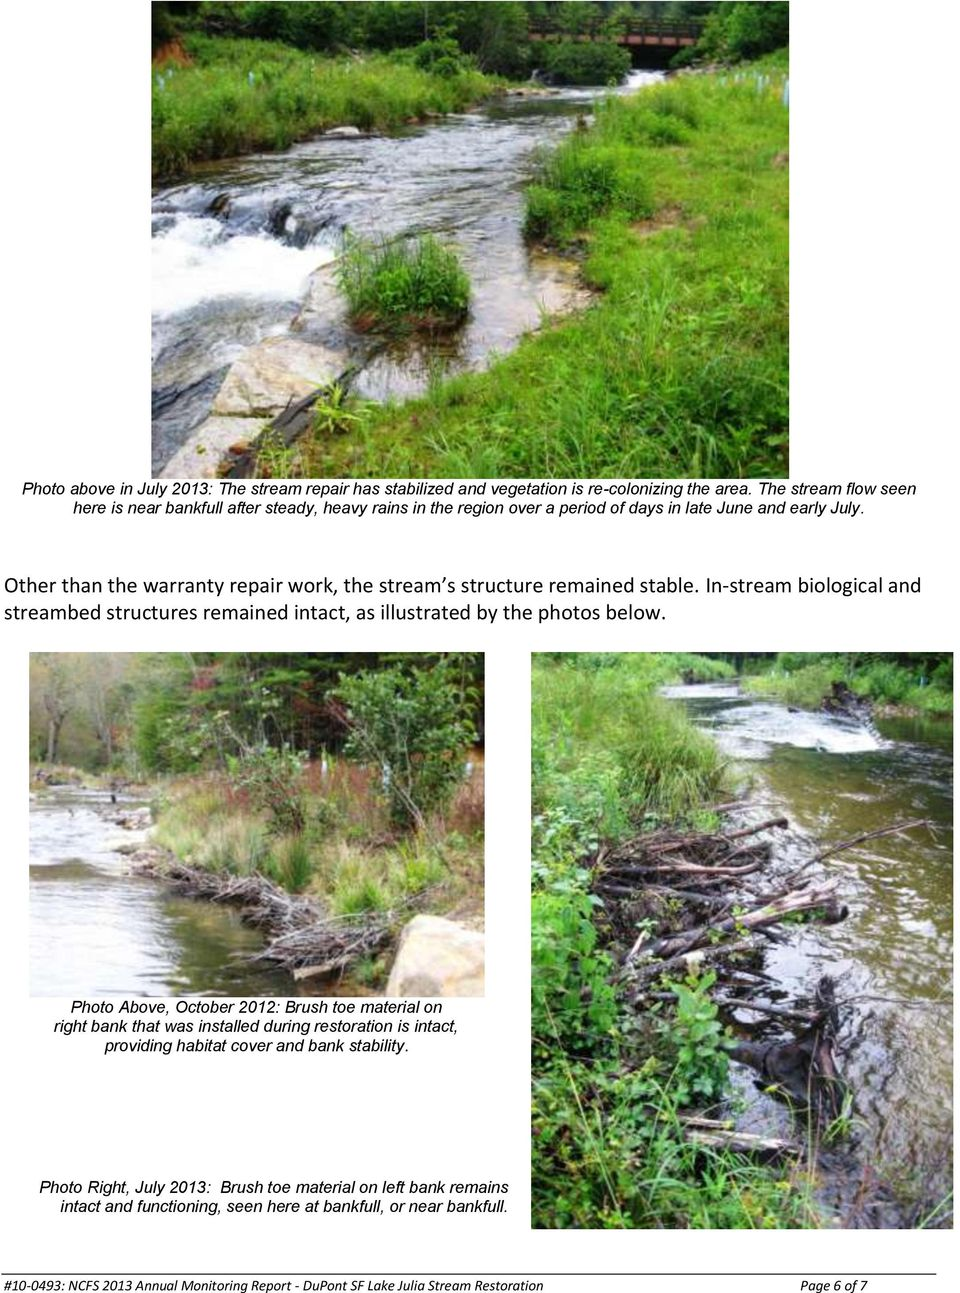 Other than the warranty repair work, the stream s structure remained stable. In-stream biological and streambed structures remained intact, as illustrated by the photos below.